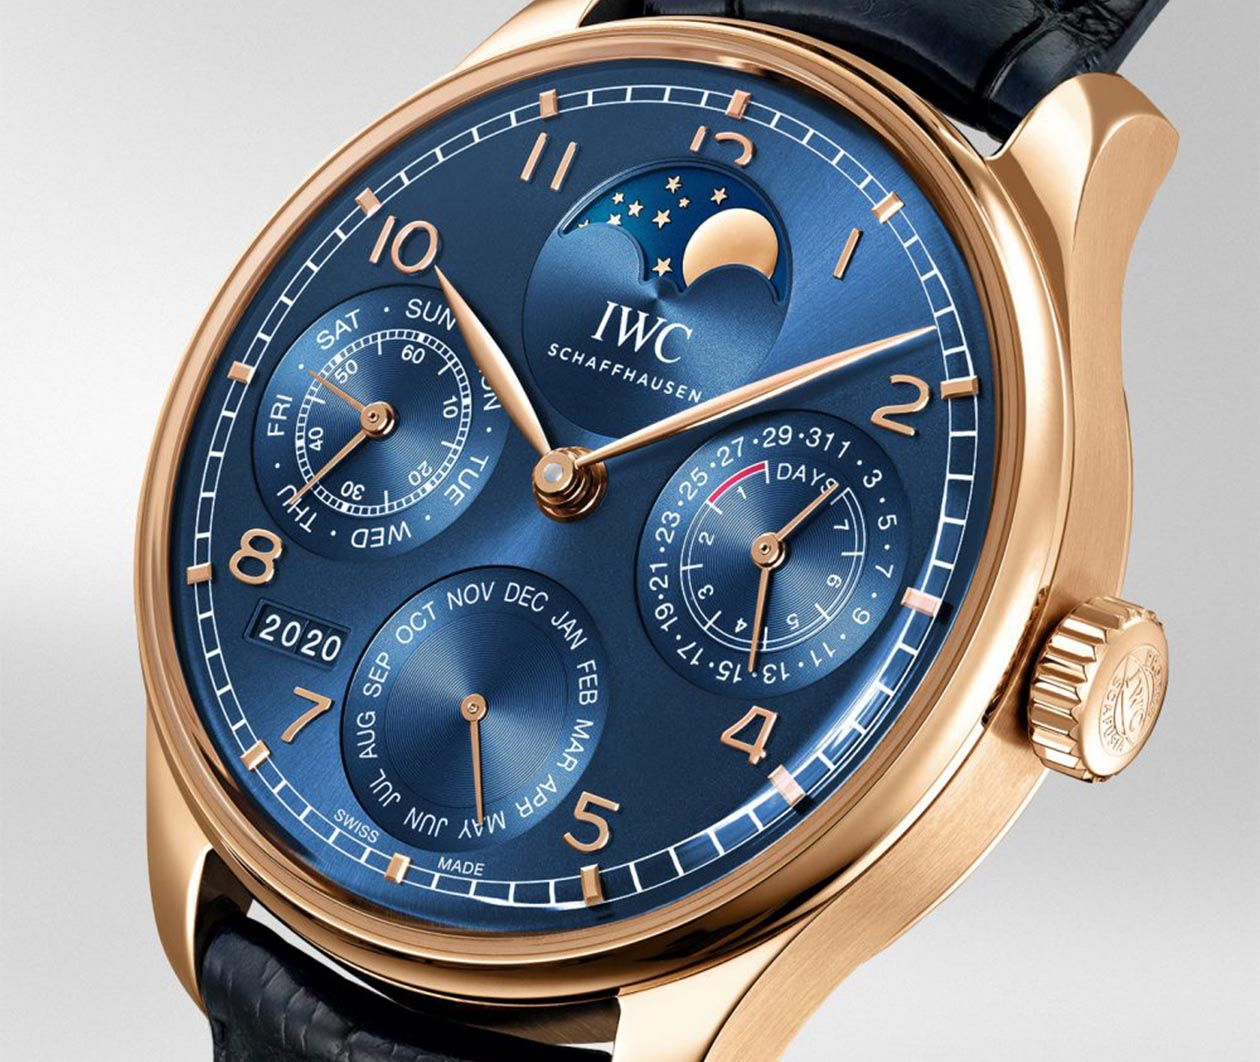 IWC Portugieser PerpetualCalendarBoutiqueEdition IW503312 Carousel 2 FINAL